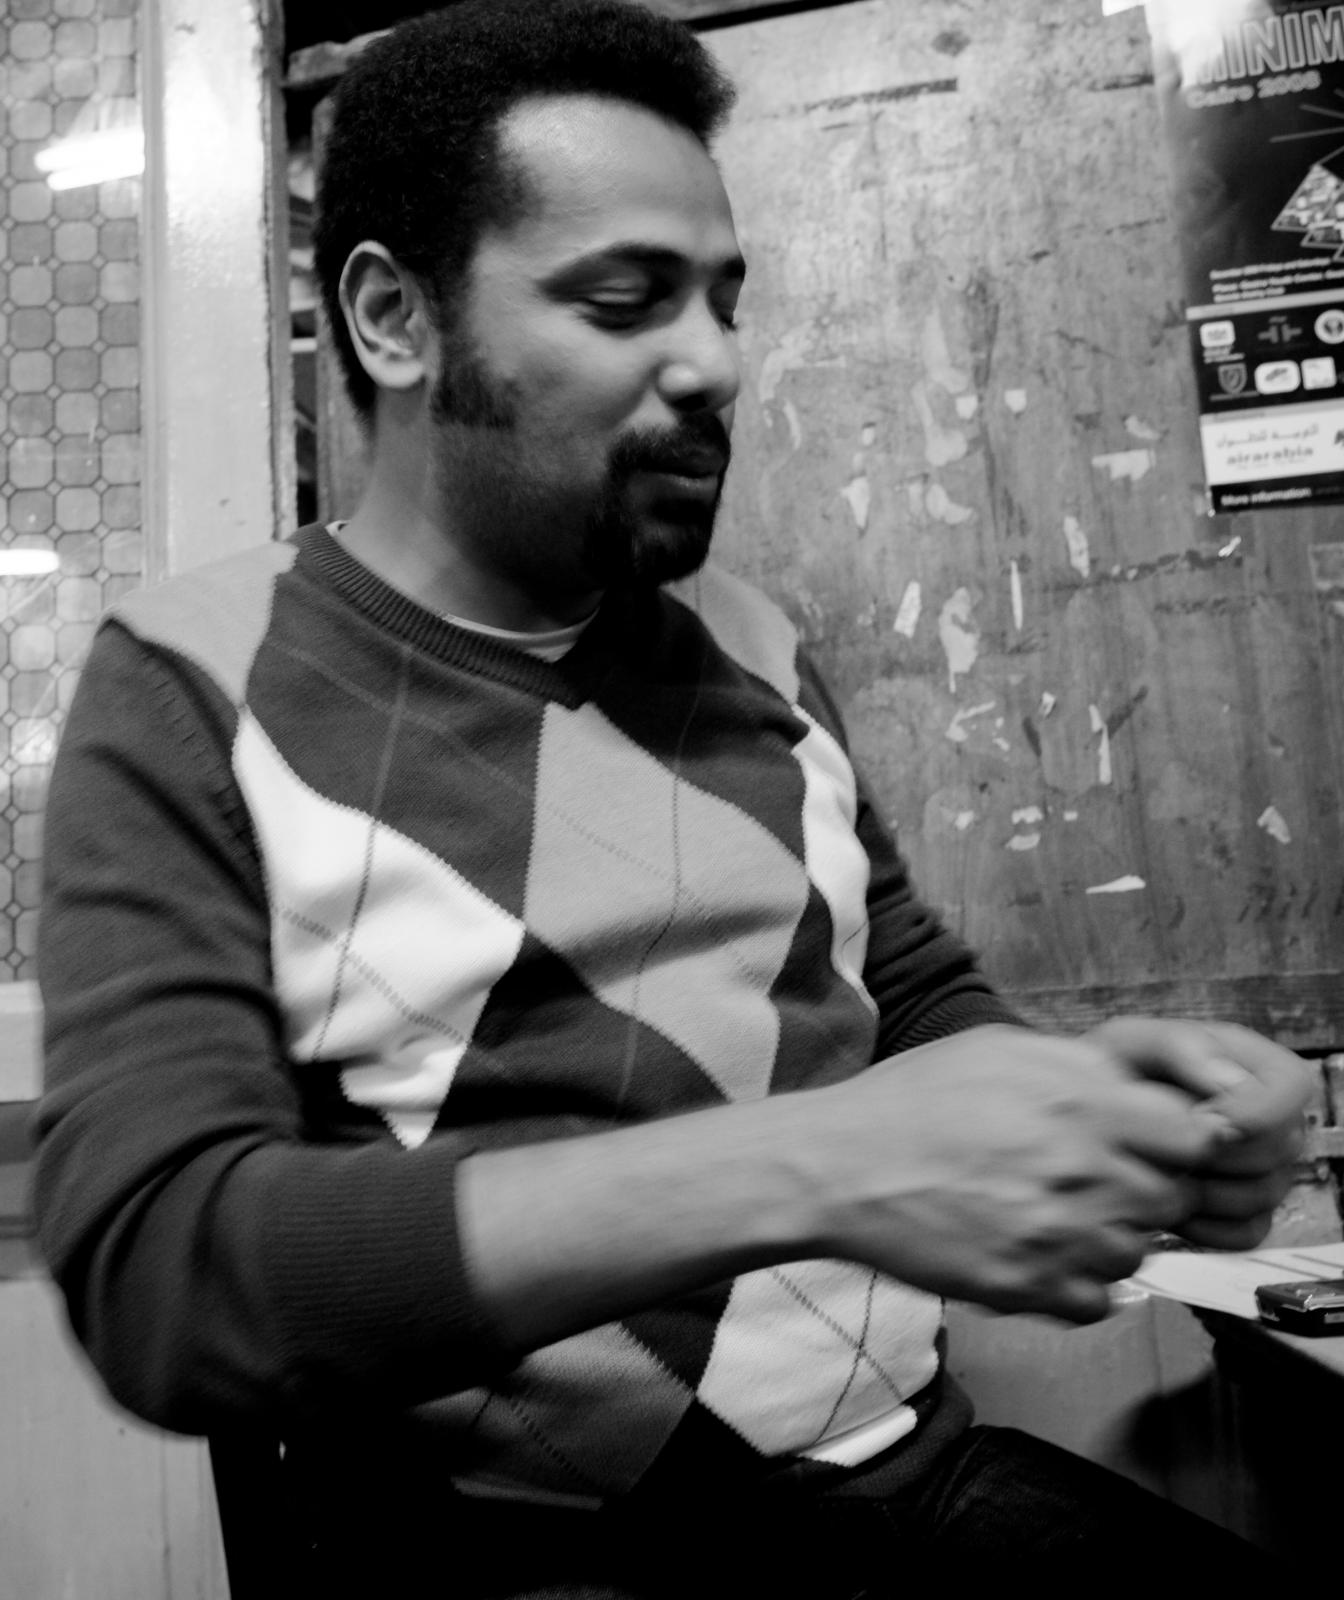 Wael Abbas. Photo by Hossam el-Hamalawy.